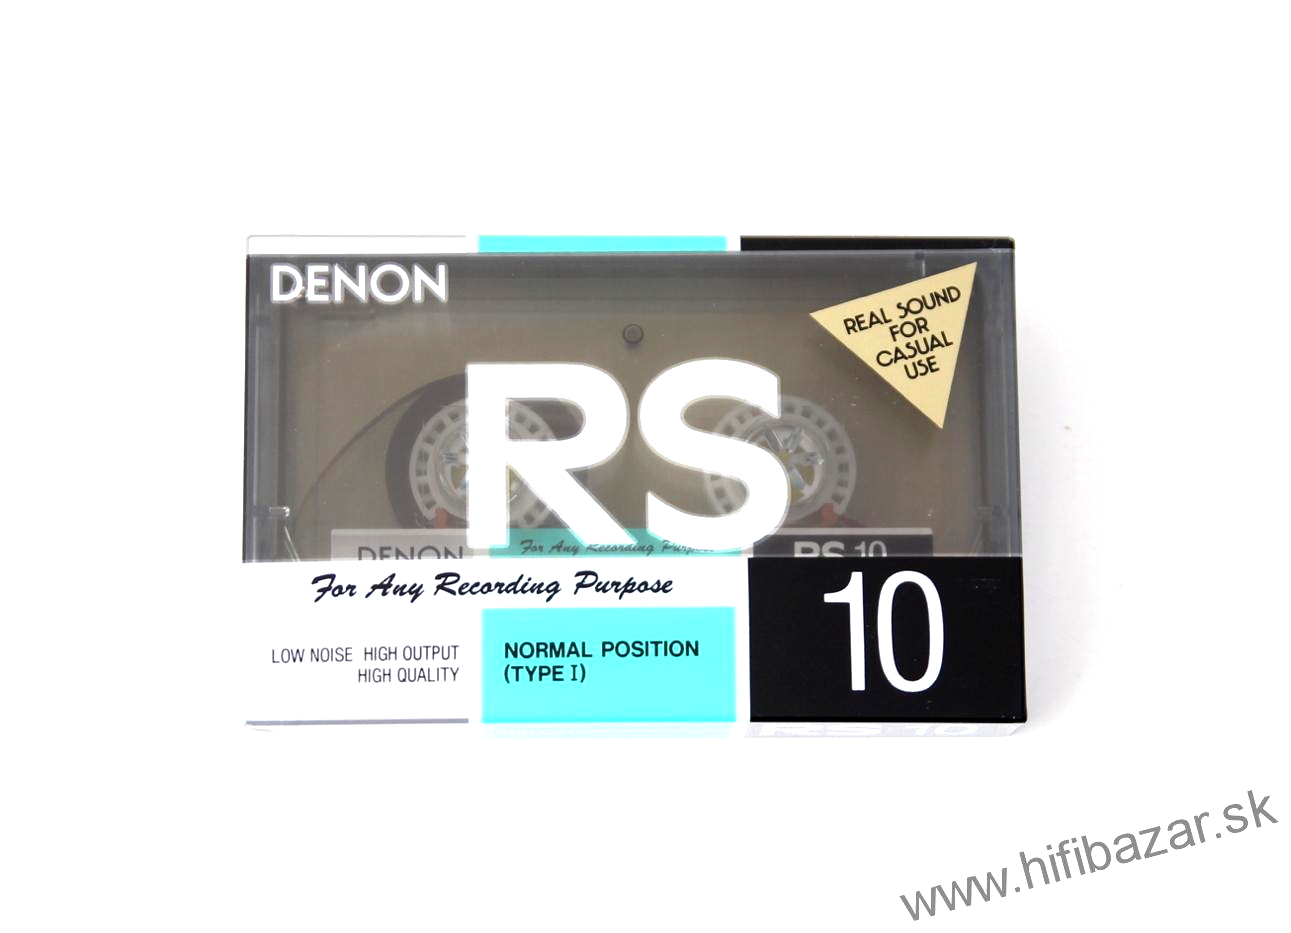 DENON RS-10 Position Normal